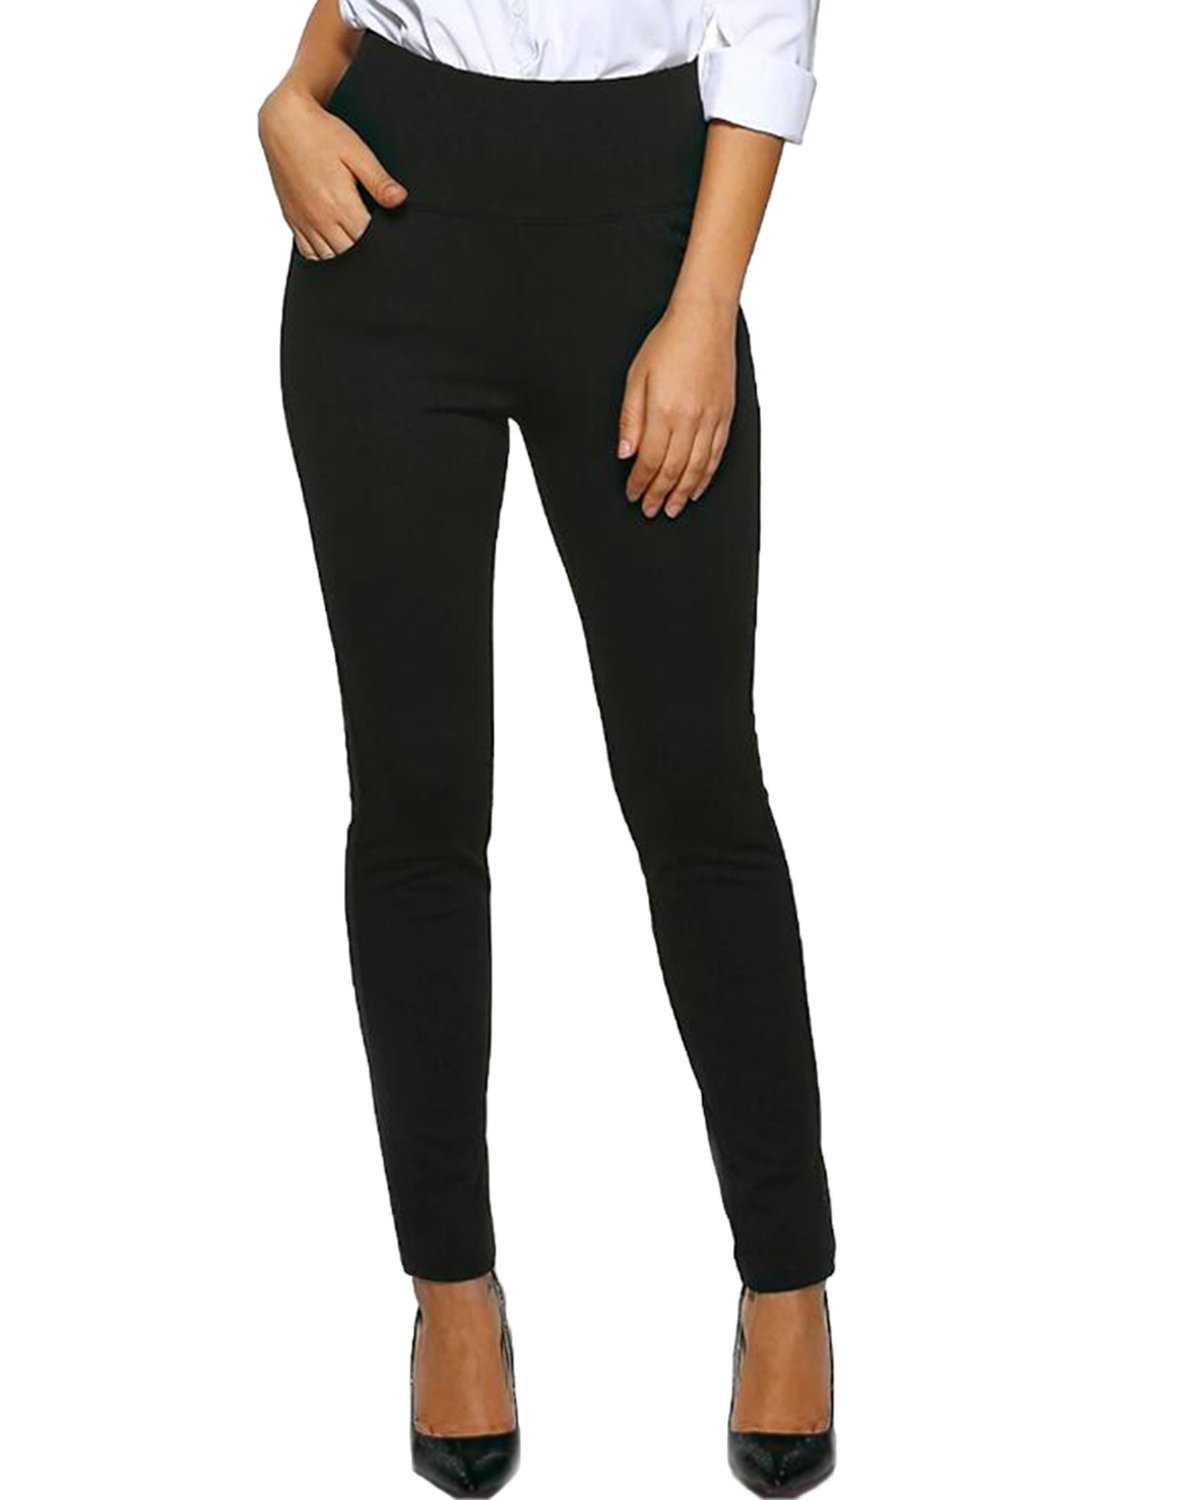 Kidsform Womens Dress Pants Straight Leg Trousers Office Wear Ladies Pant Stretch Slim Fit Casual Bottoms with Pocket